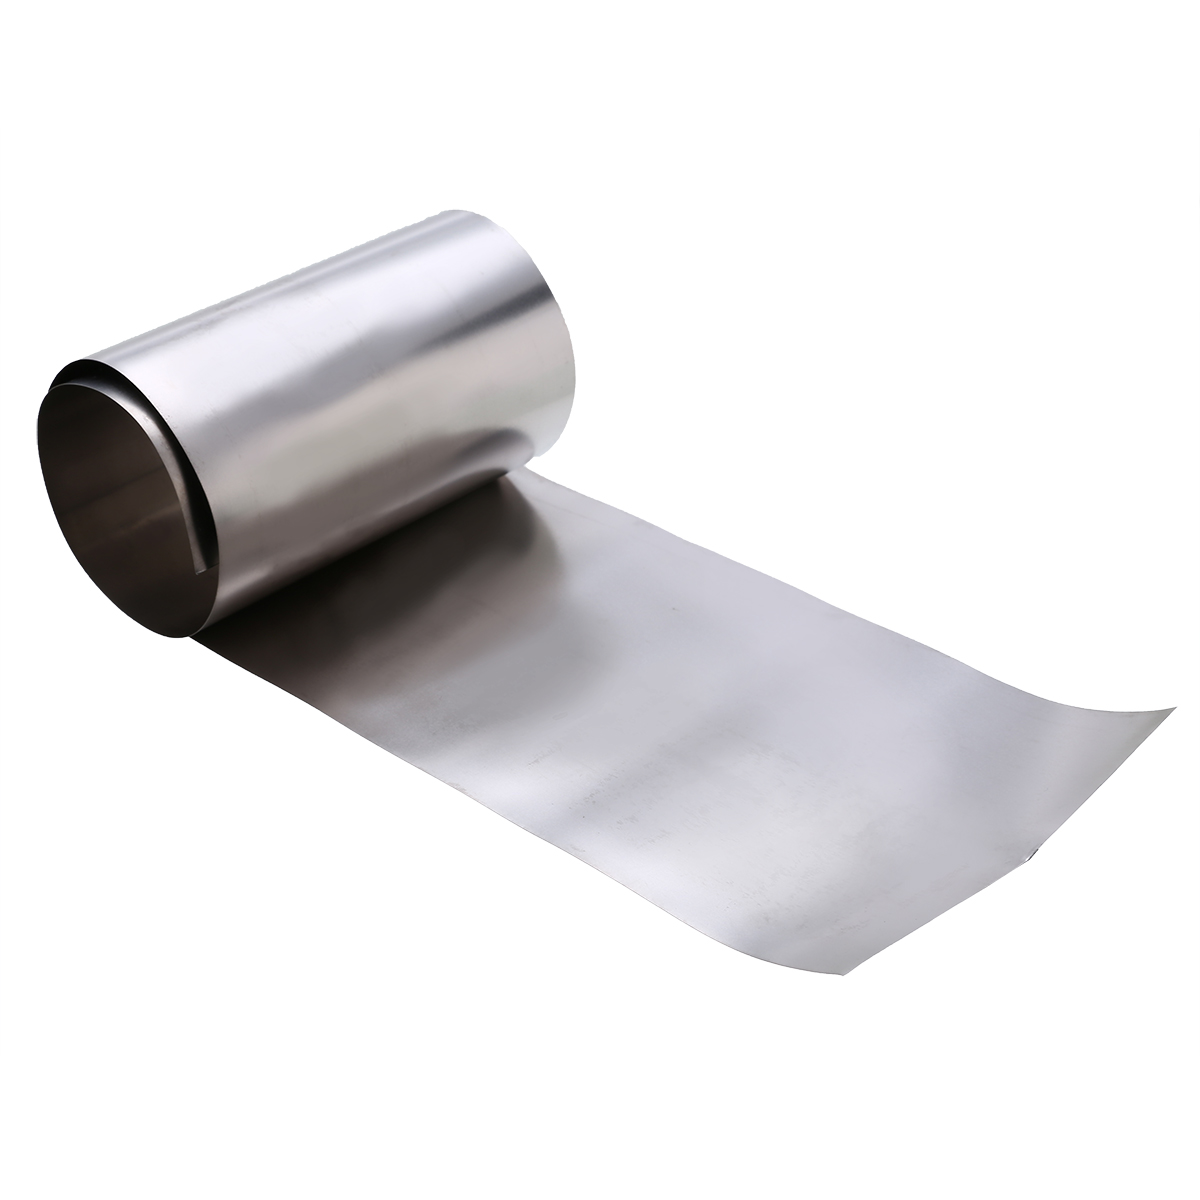 1pc Gr2 Titanium Foil Silver Thin Ti Sheet High Purity Metal Square Plate Sheet Foil Craft 0.1x100x500mm Mayitr